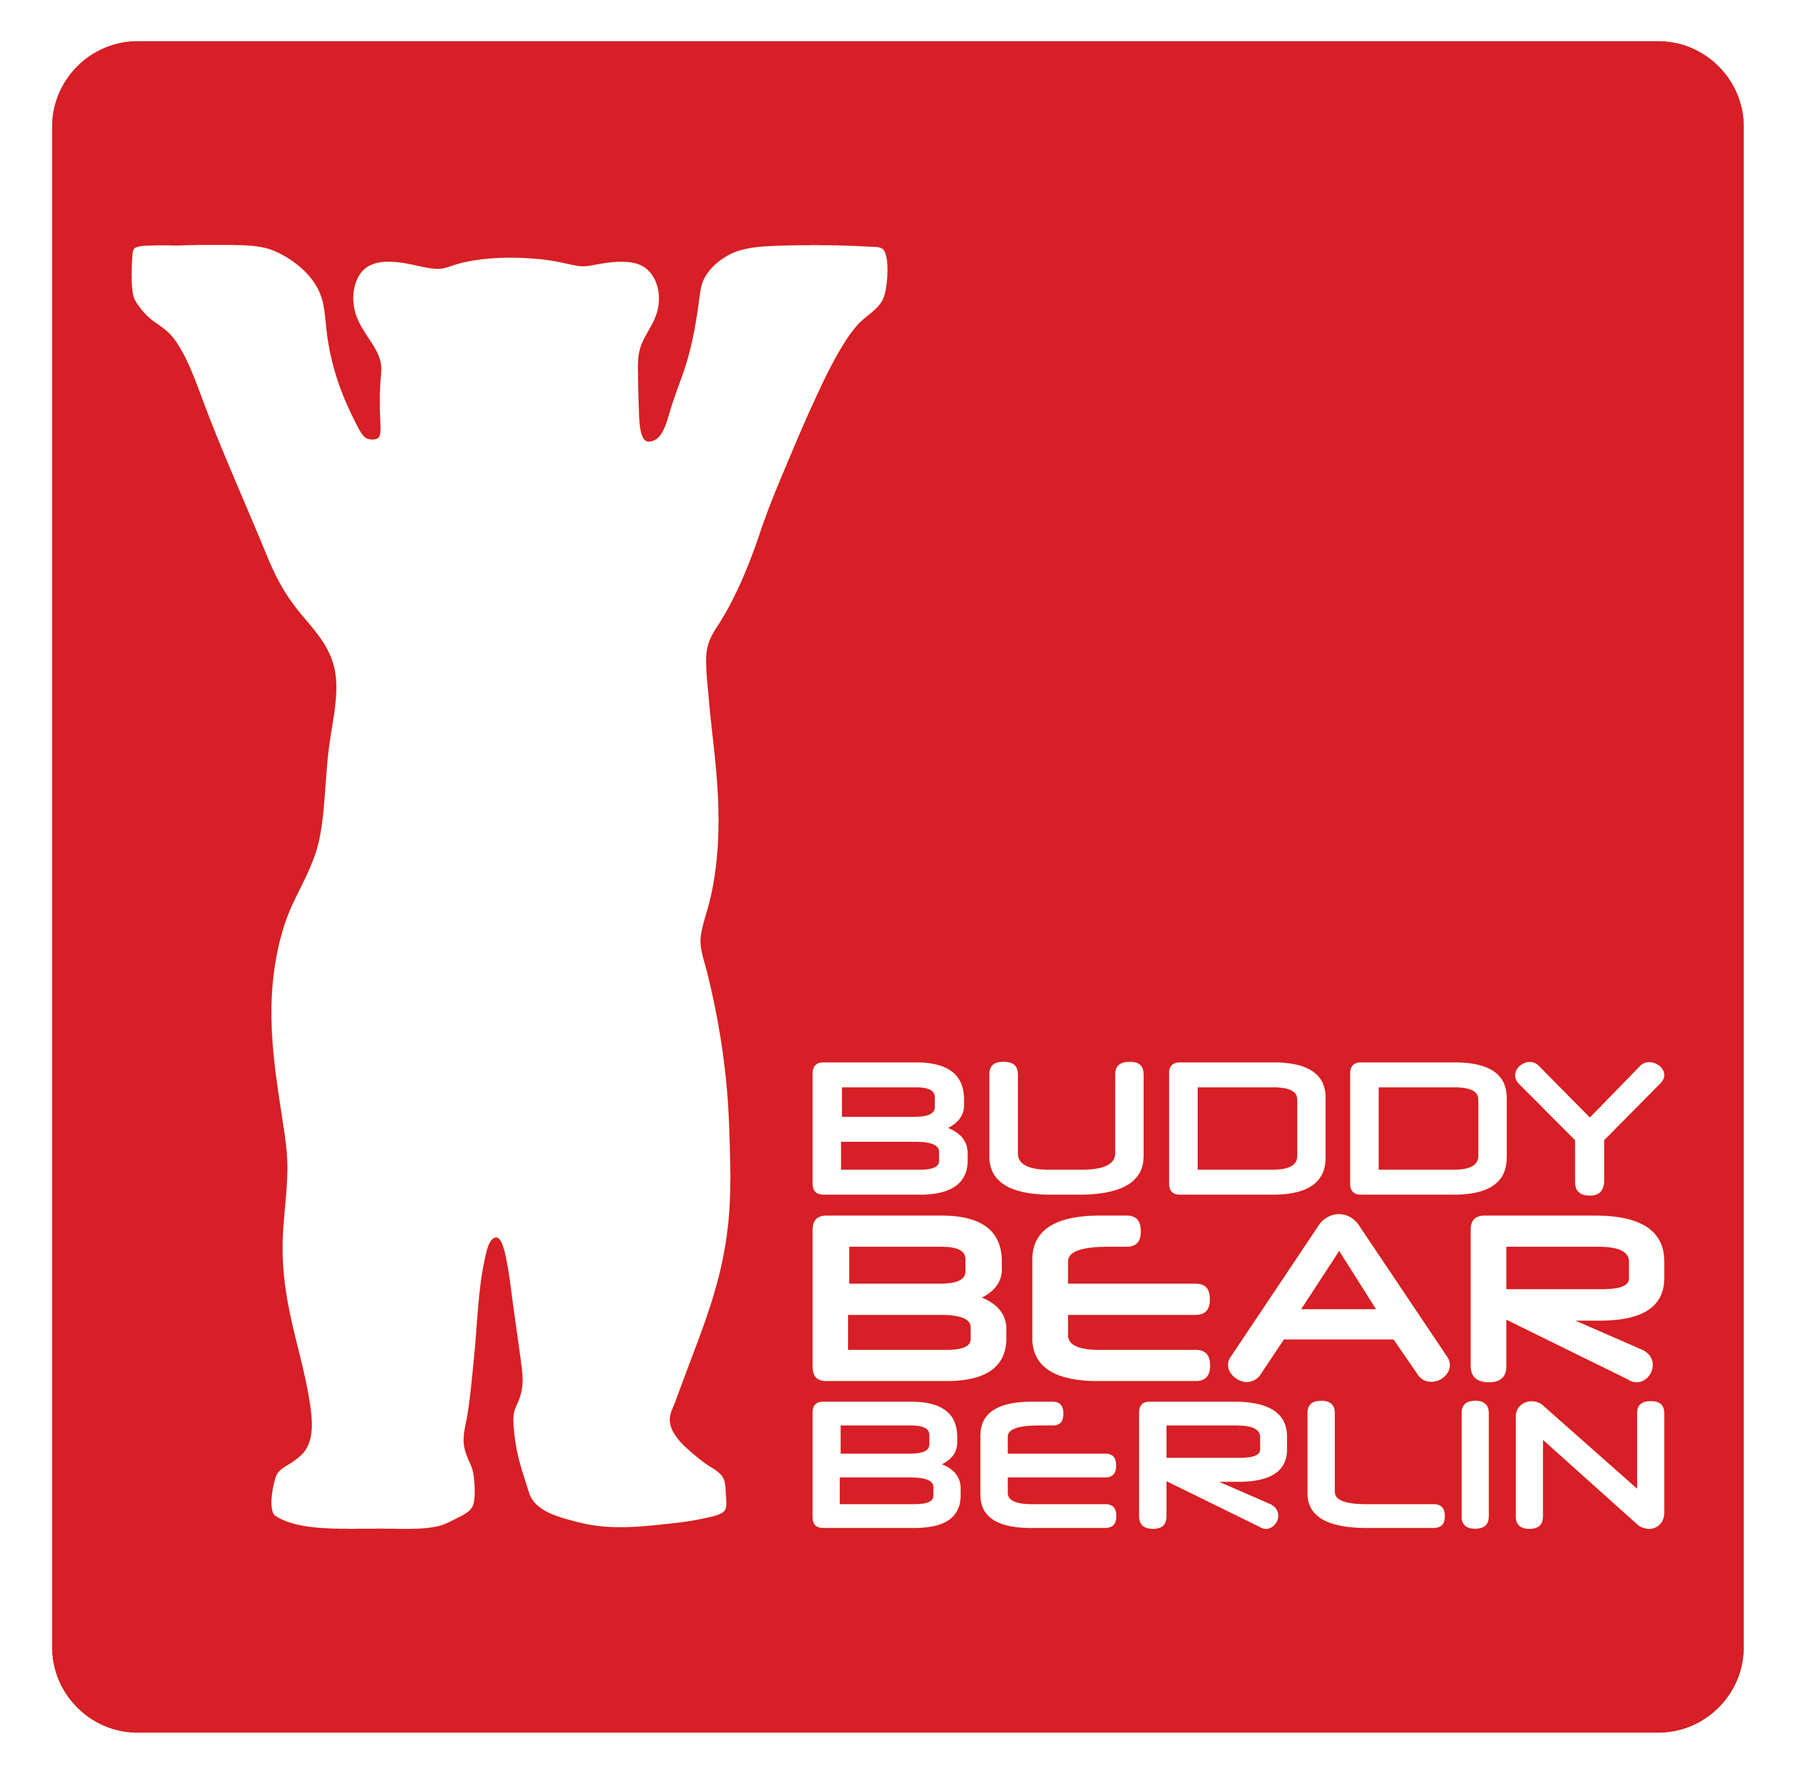 buddy b r bear berlin deluxe online shop b ren finden kaufen. Black Bedroom Furniture Sets. Home Design Ideas